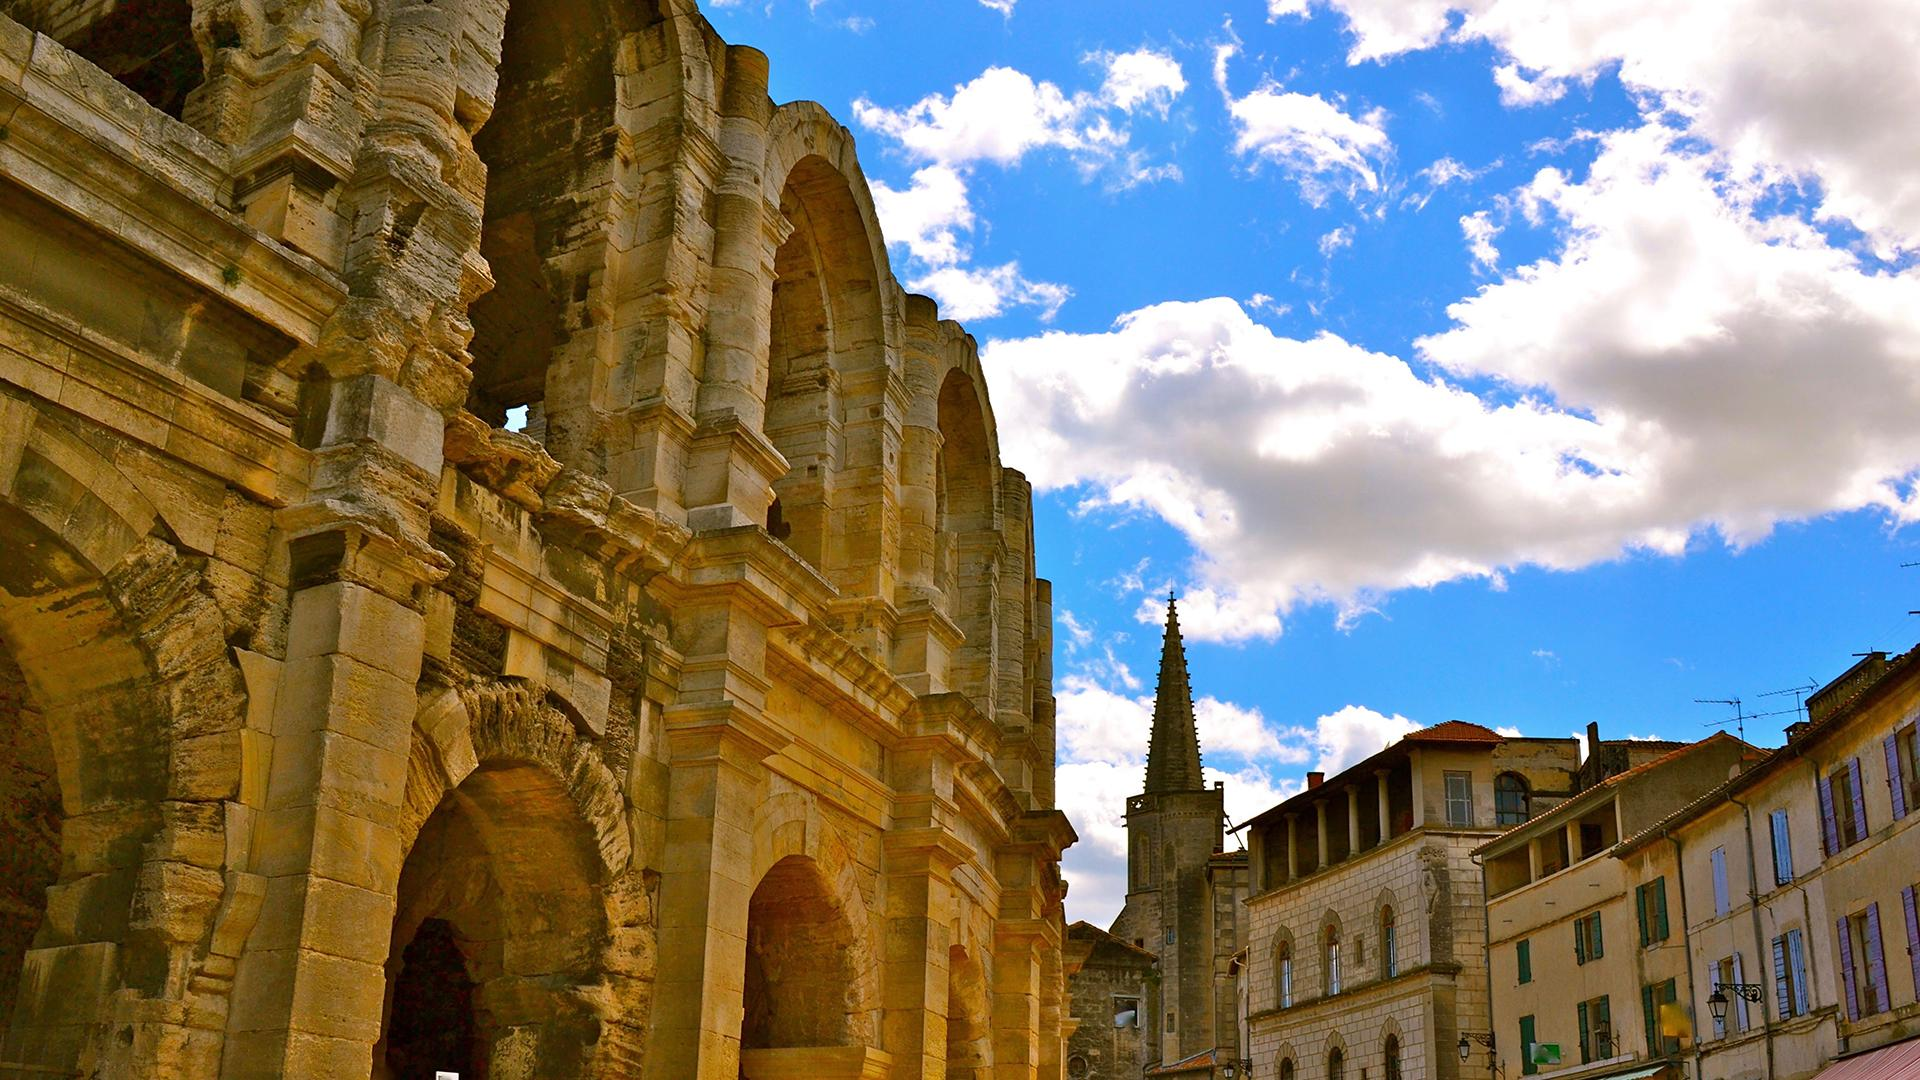 10 Best Arles Tours & Vacation Packages 2019/2020 - TourRadar